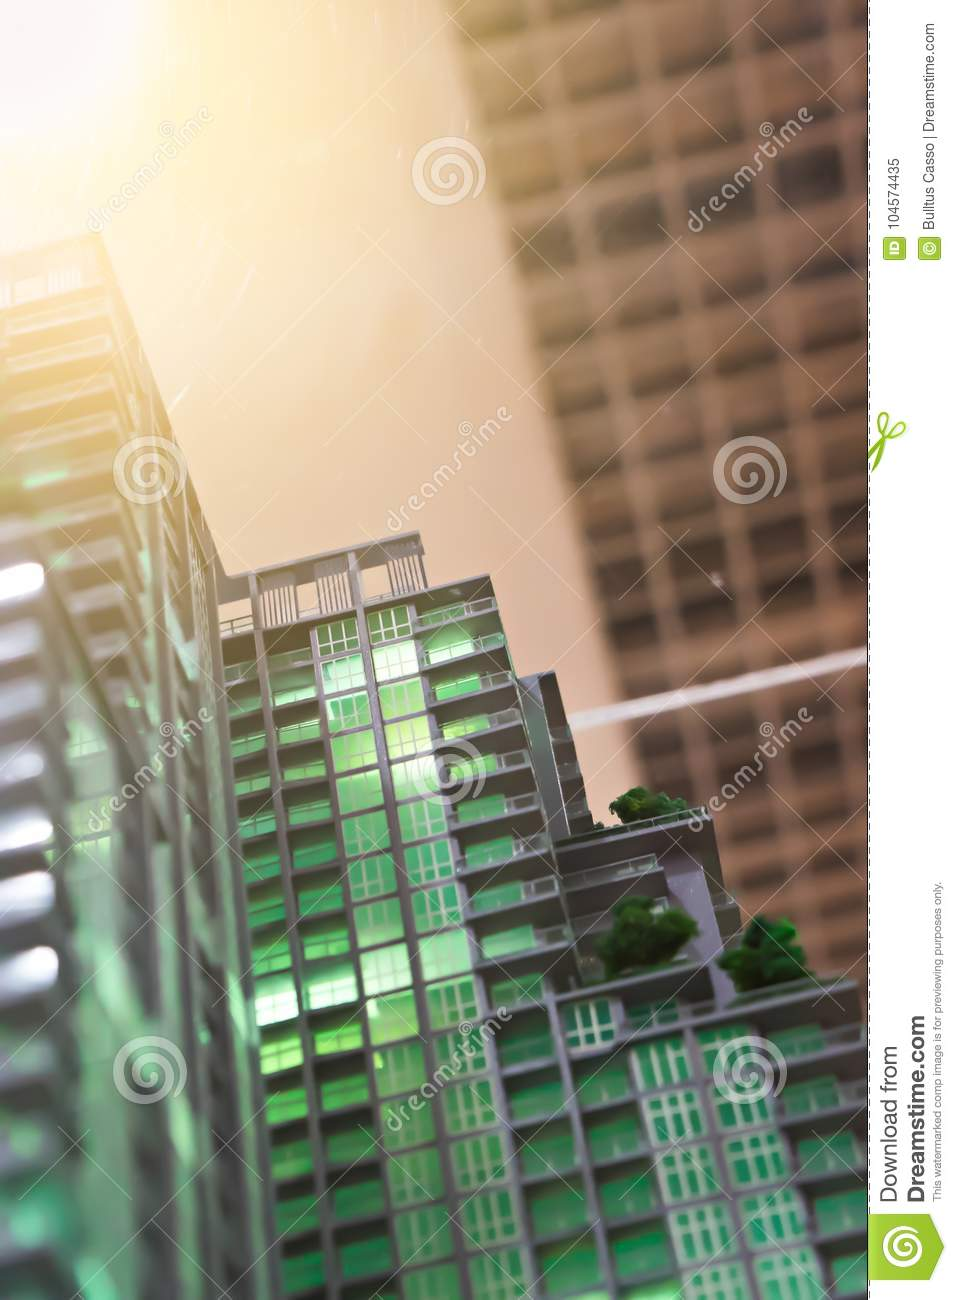 Blurred Model condominium architectural of a modern building